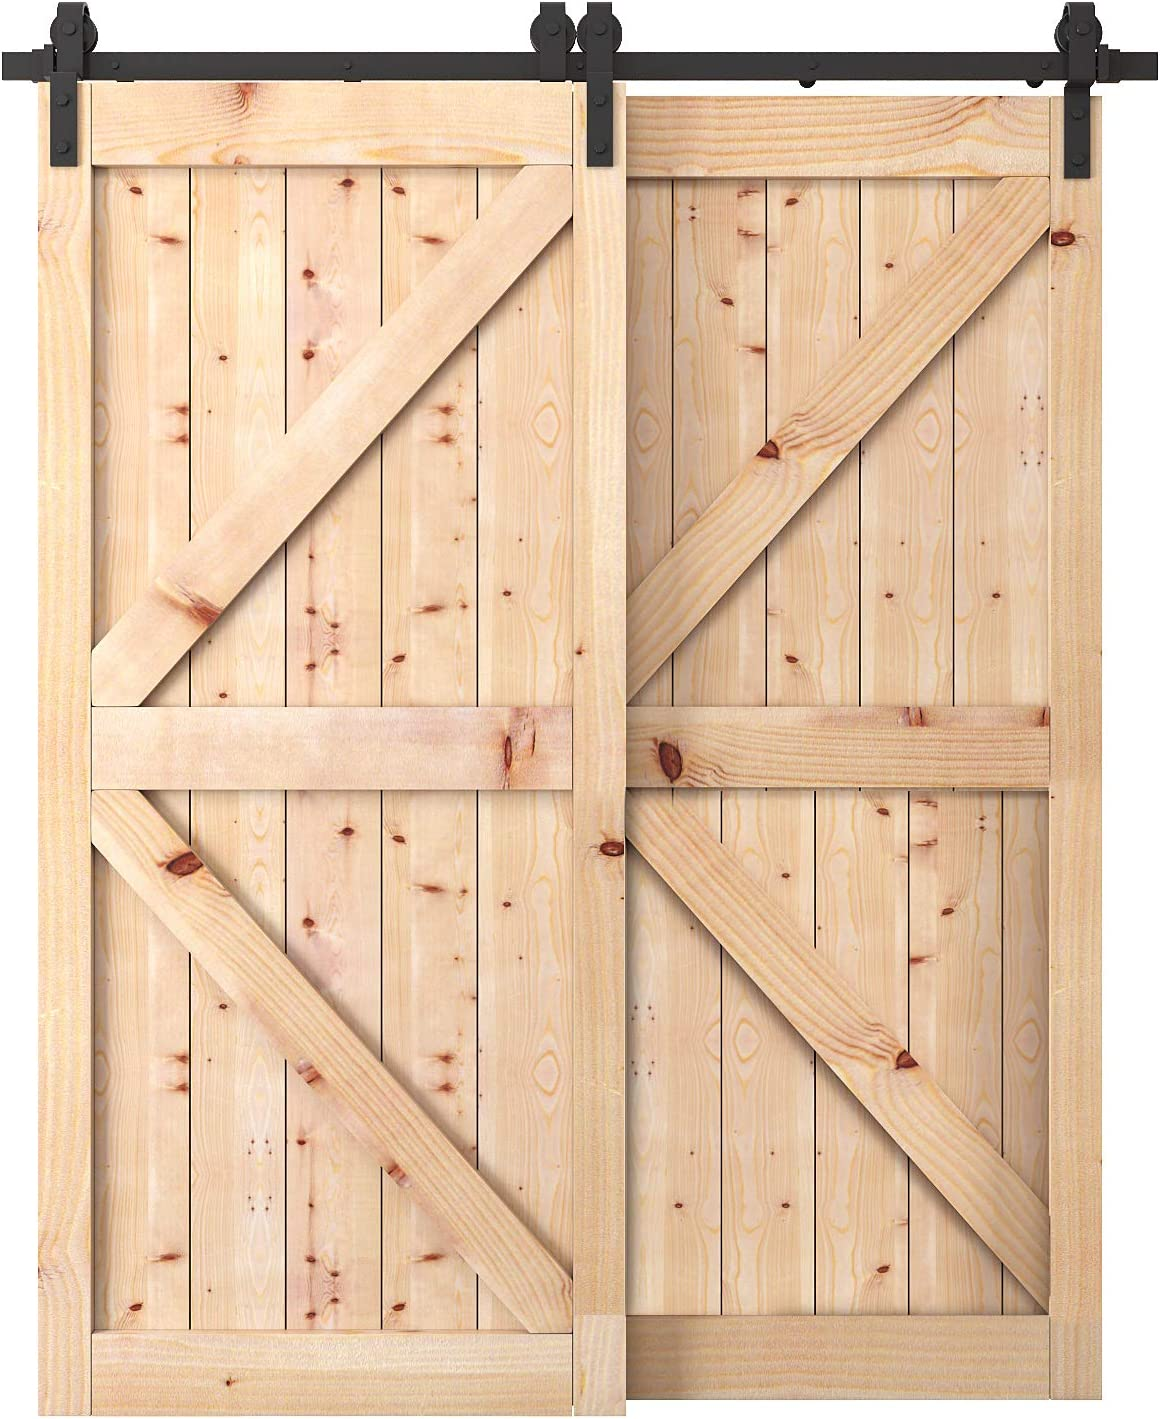 6.6 FT Antique Style Bypass Sliding Barn Wood Door Hardware Roller Track Kit